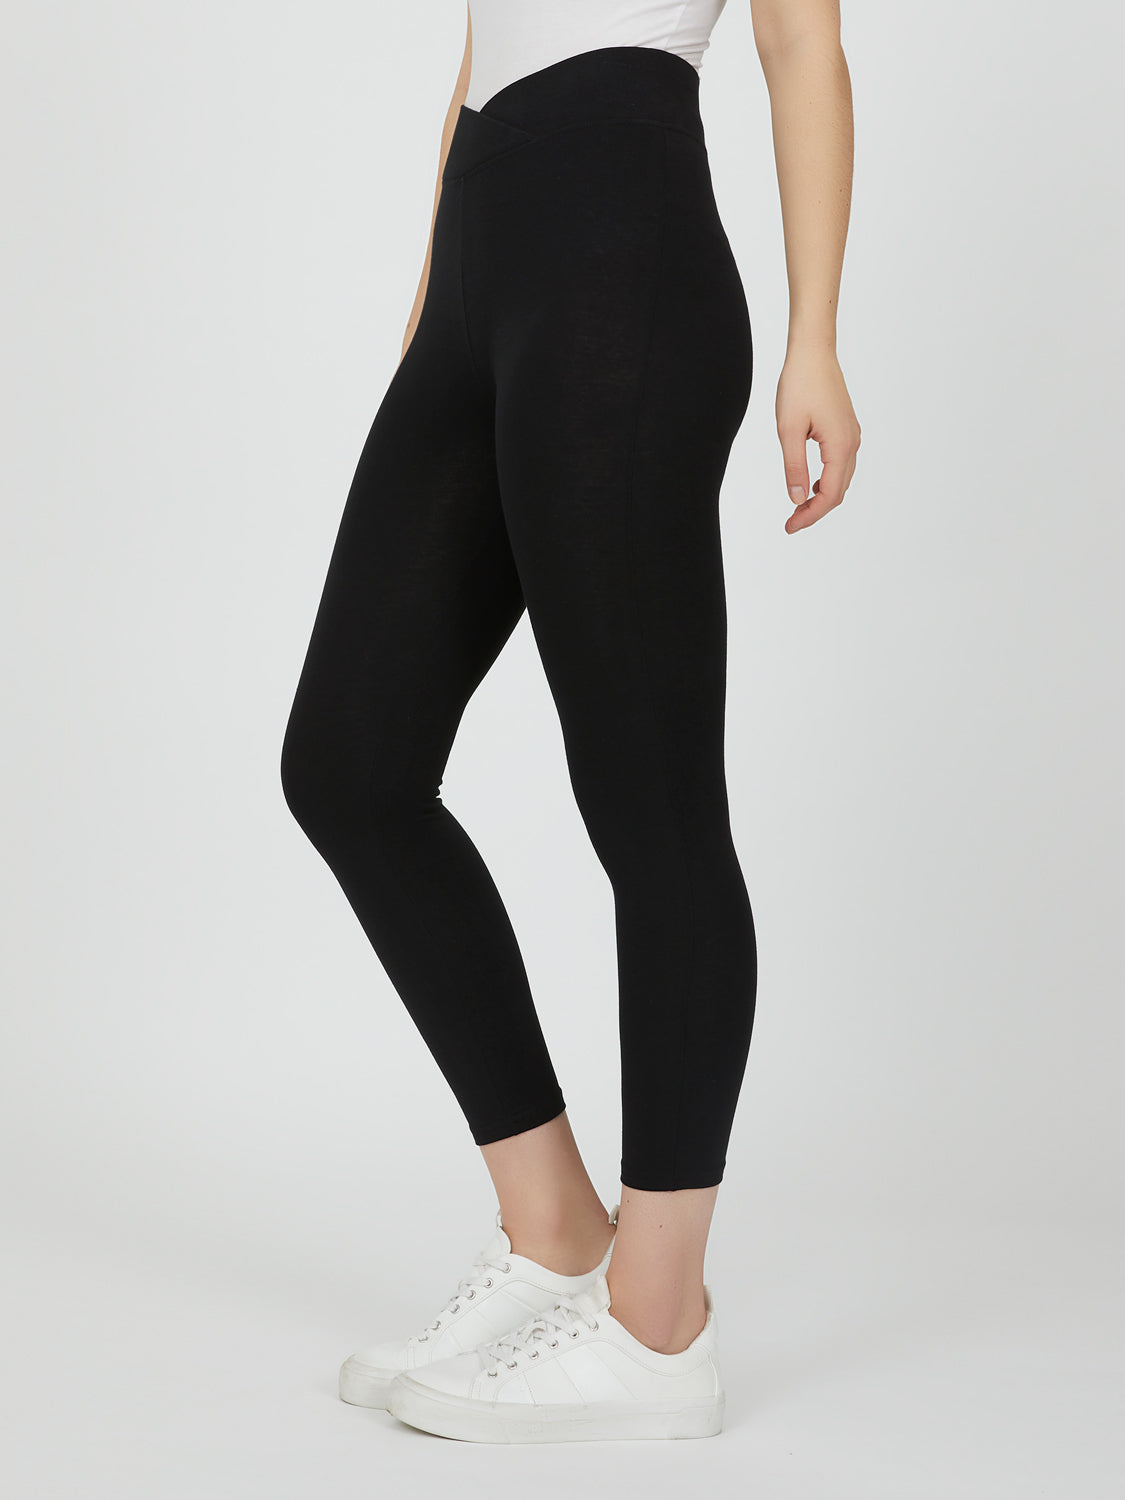 Cotton-Blend Capri leggings